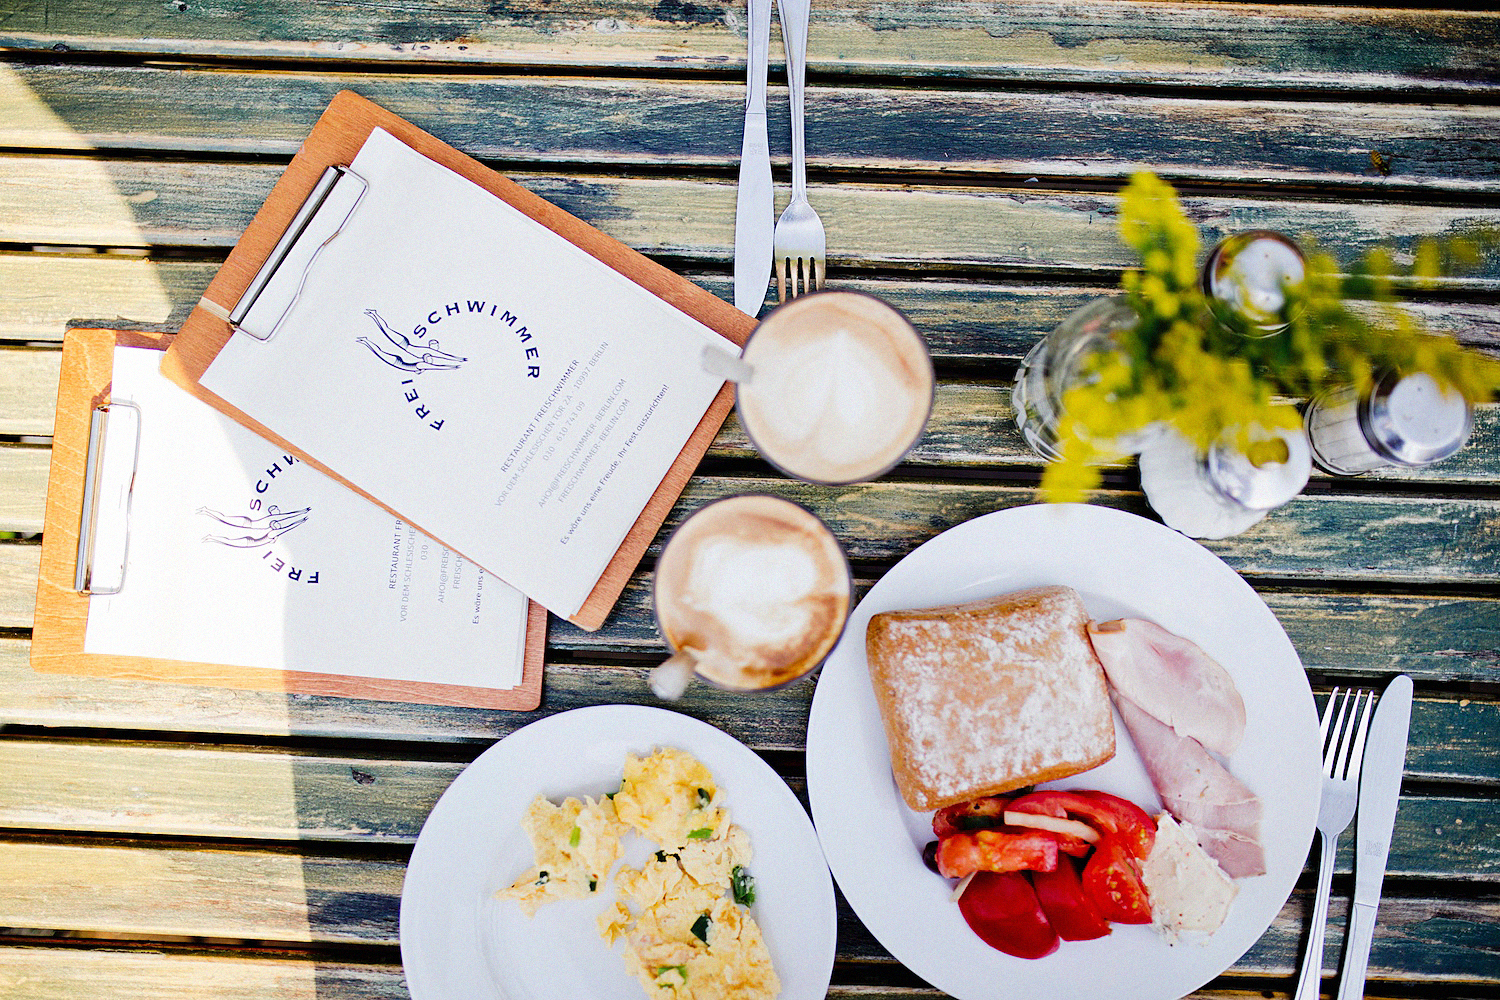 FREISCHWIMMER – Brunch in Berlin along the Spree